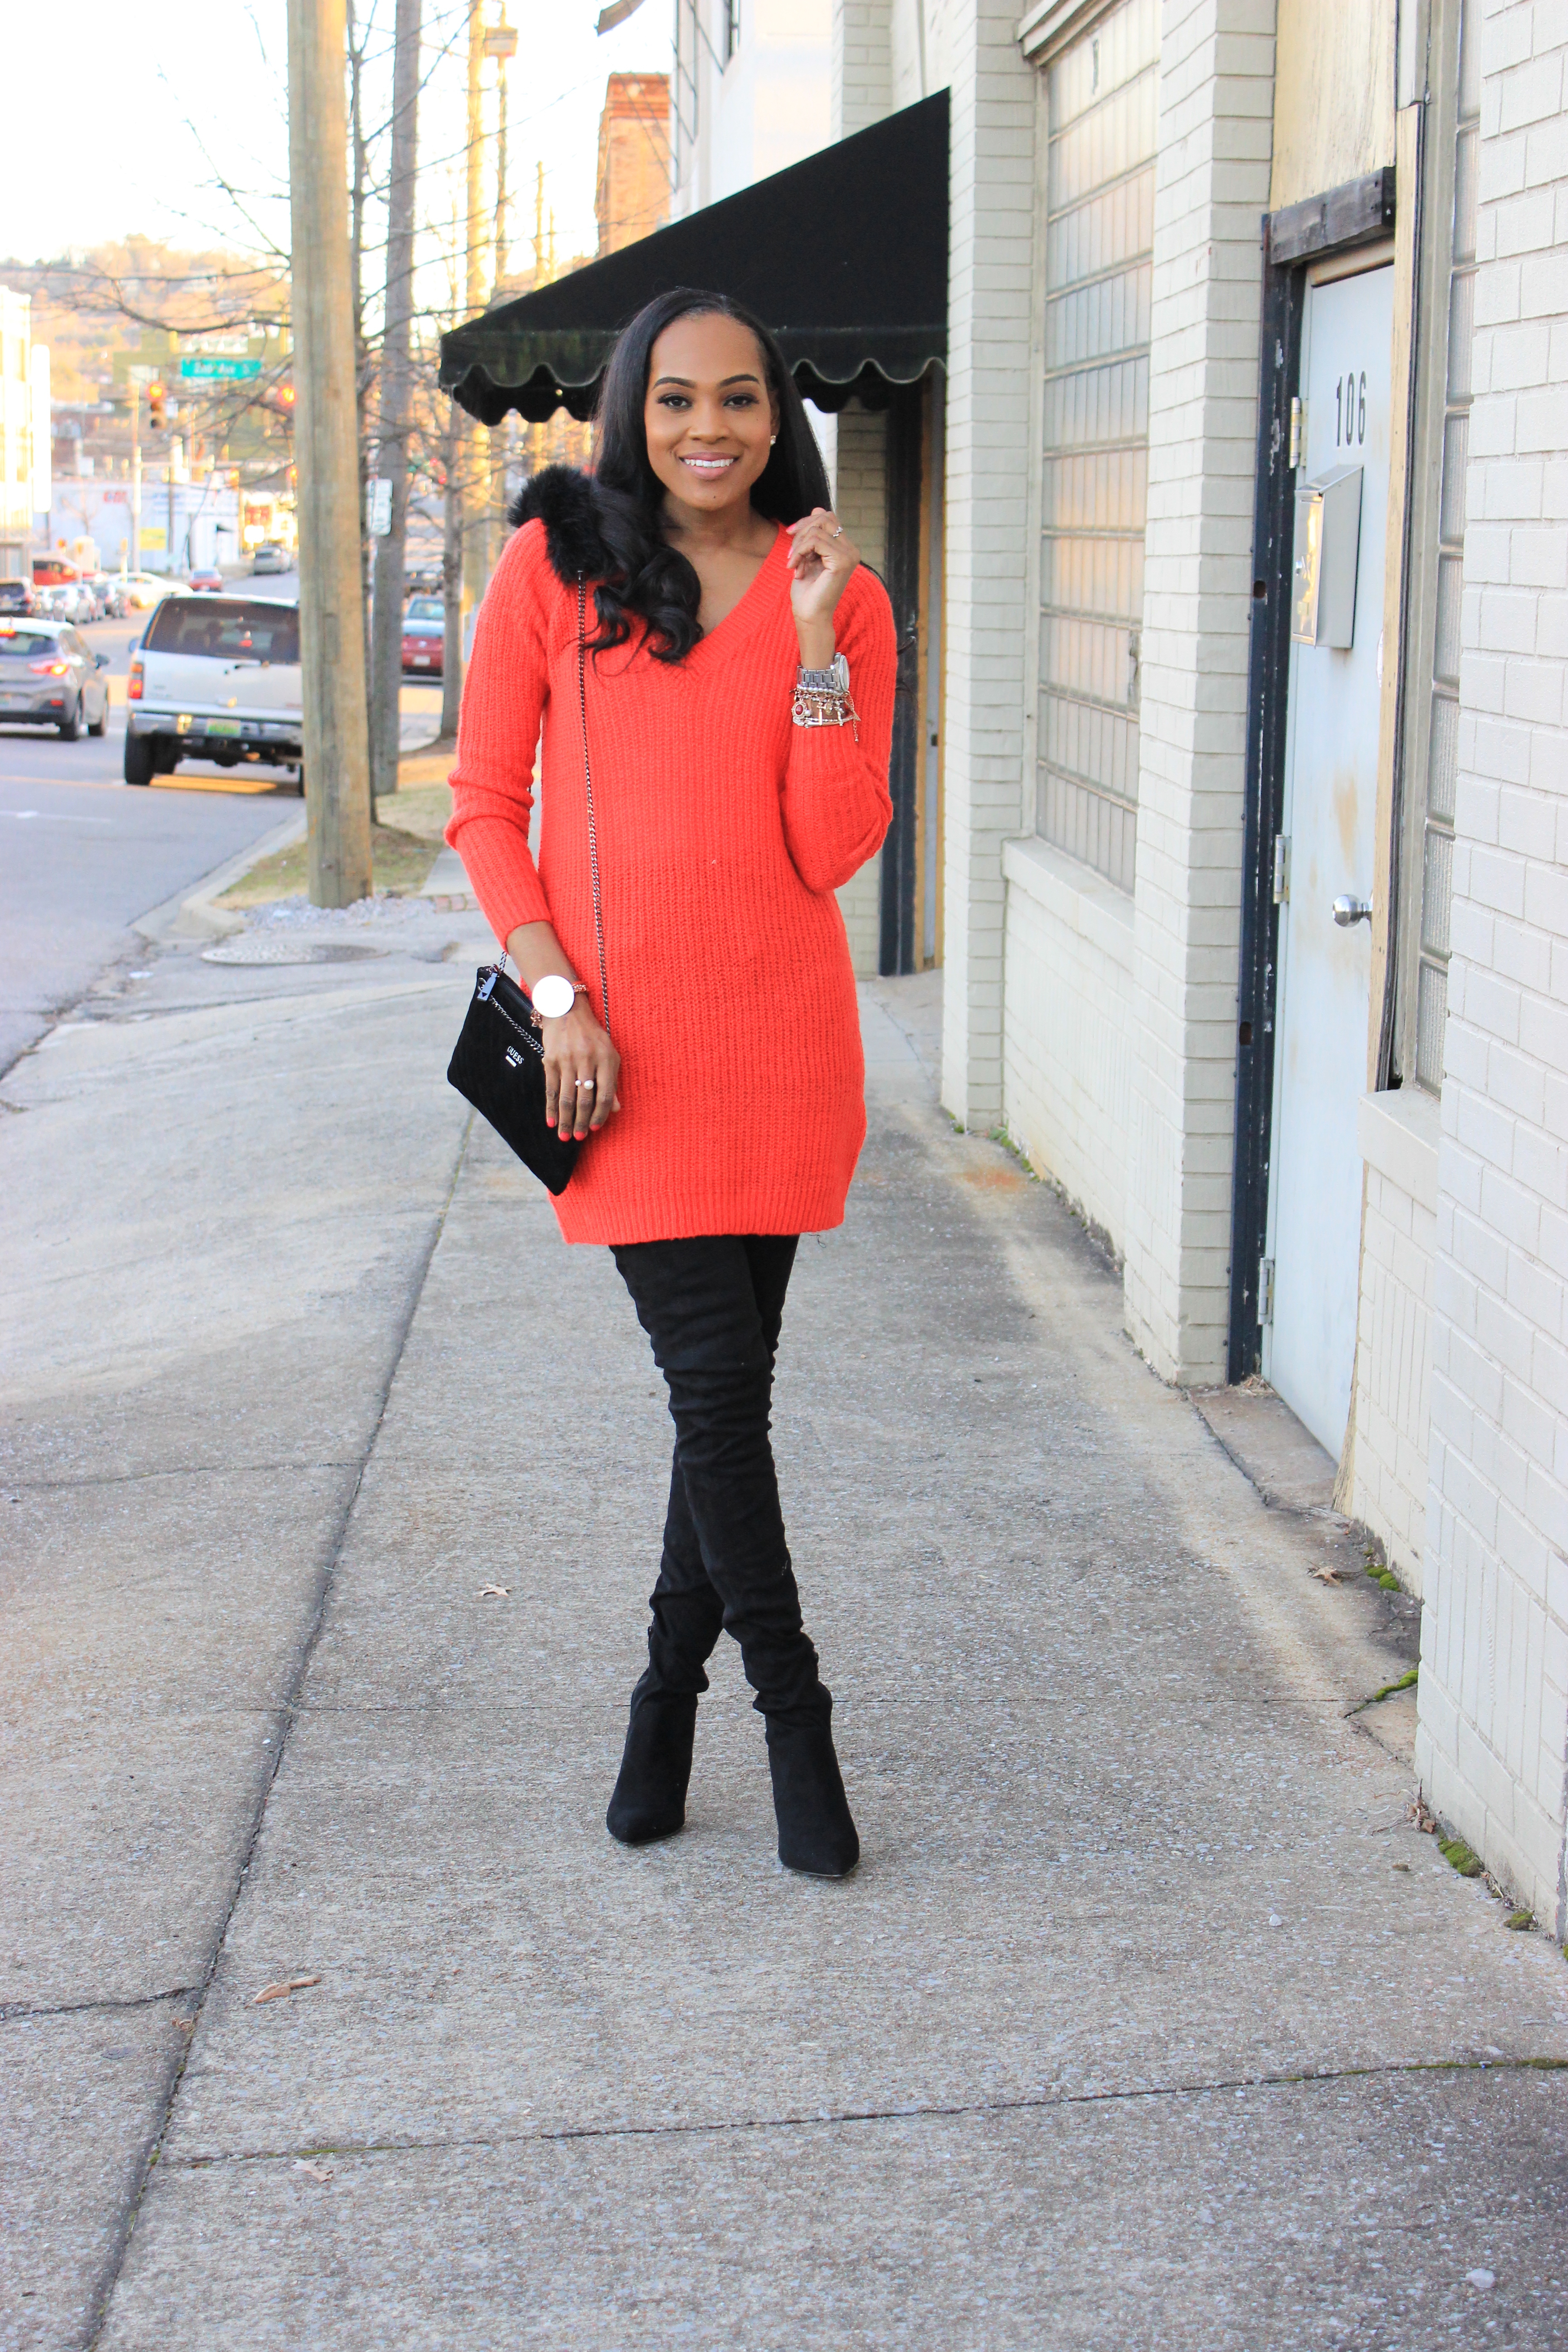 Style-files-ASOS-BLACK-KENDRA Point-Over-The-Knee-Boots-Vila-Red-Long V-Neck-Knitted-Sweater-Black-suede-flat-front-pocket-shorts-oohlalablog-6